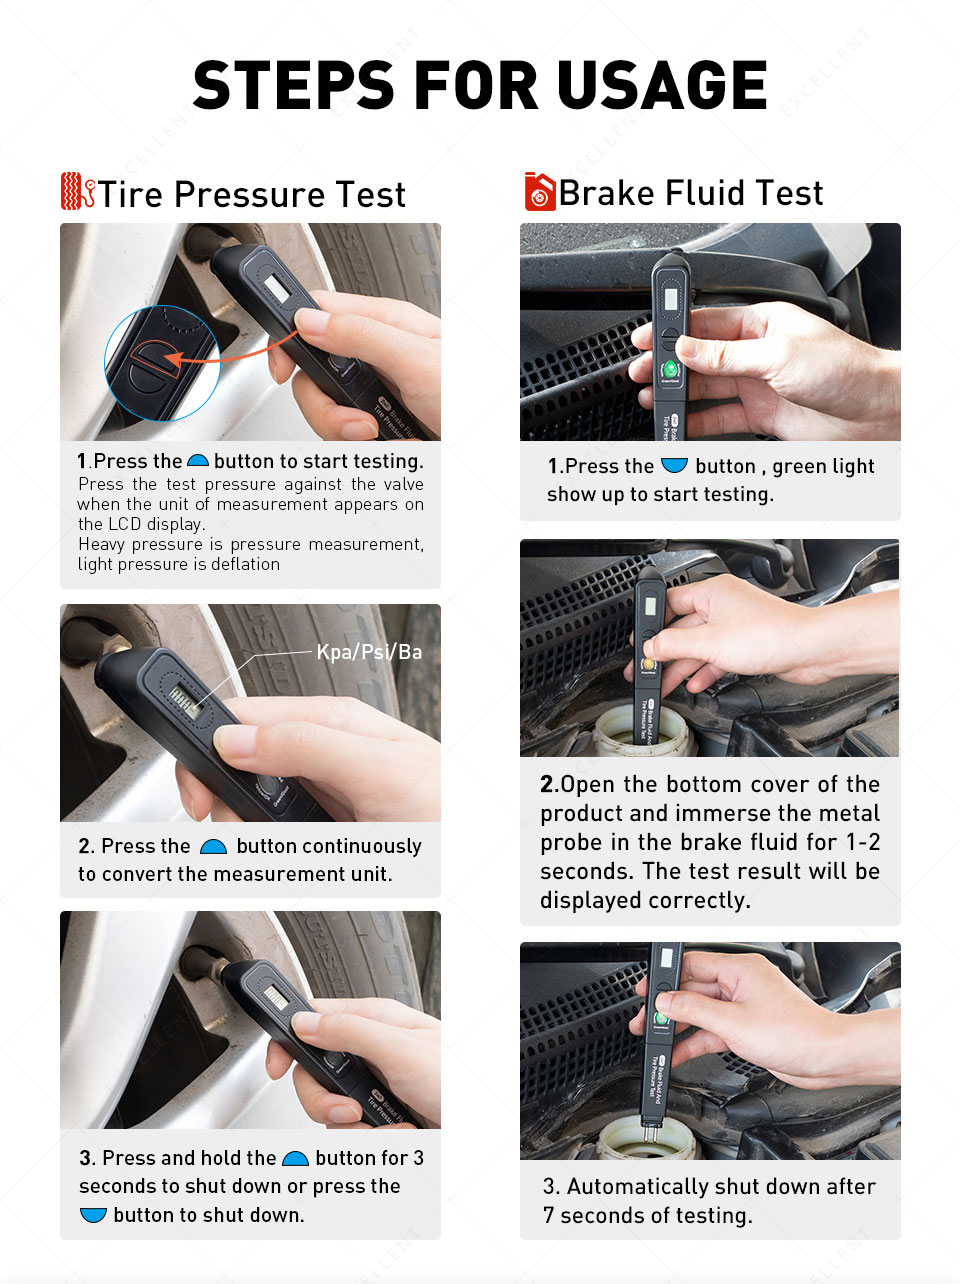 How to use Brake Fluid Tester And Tire Pressure Test 2 in 1